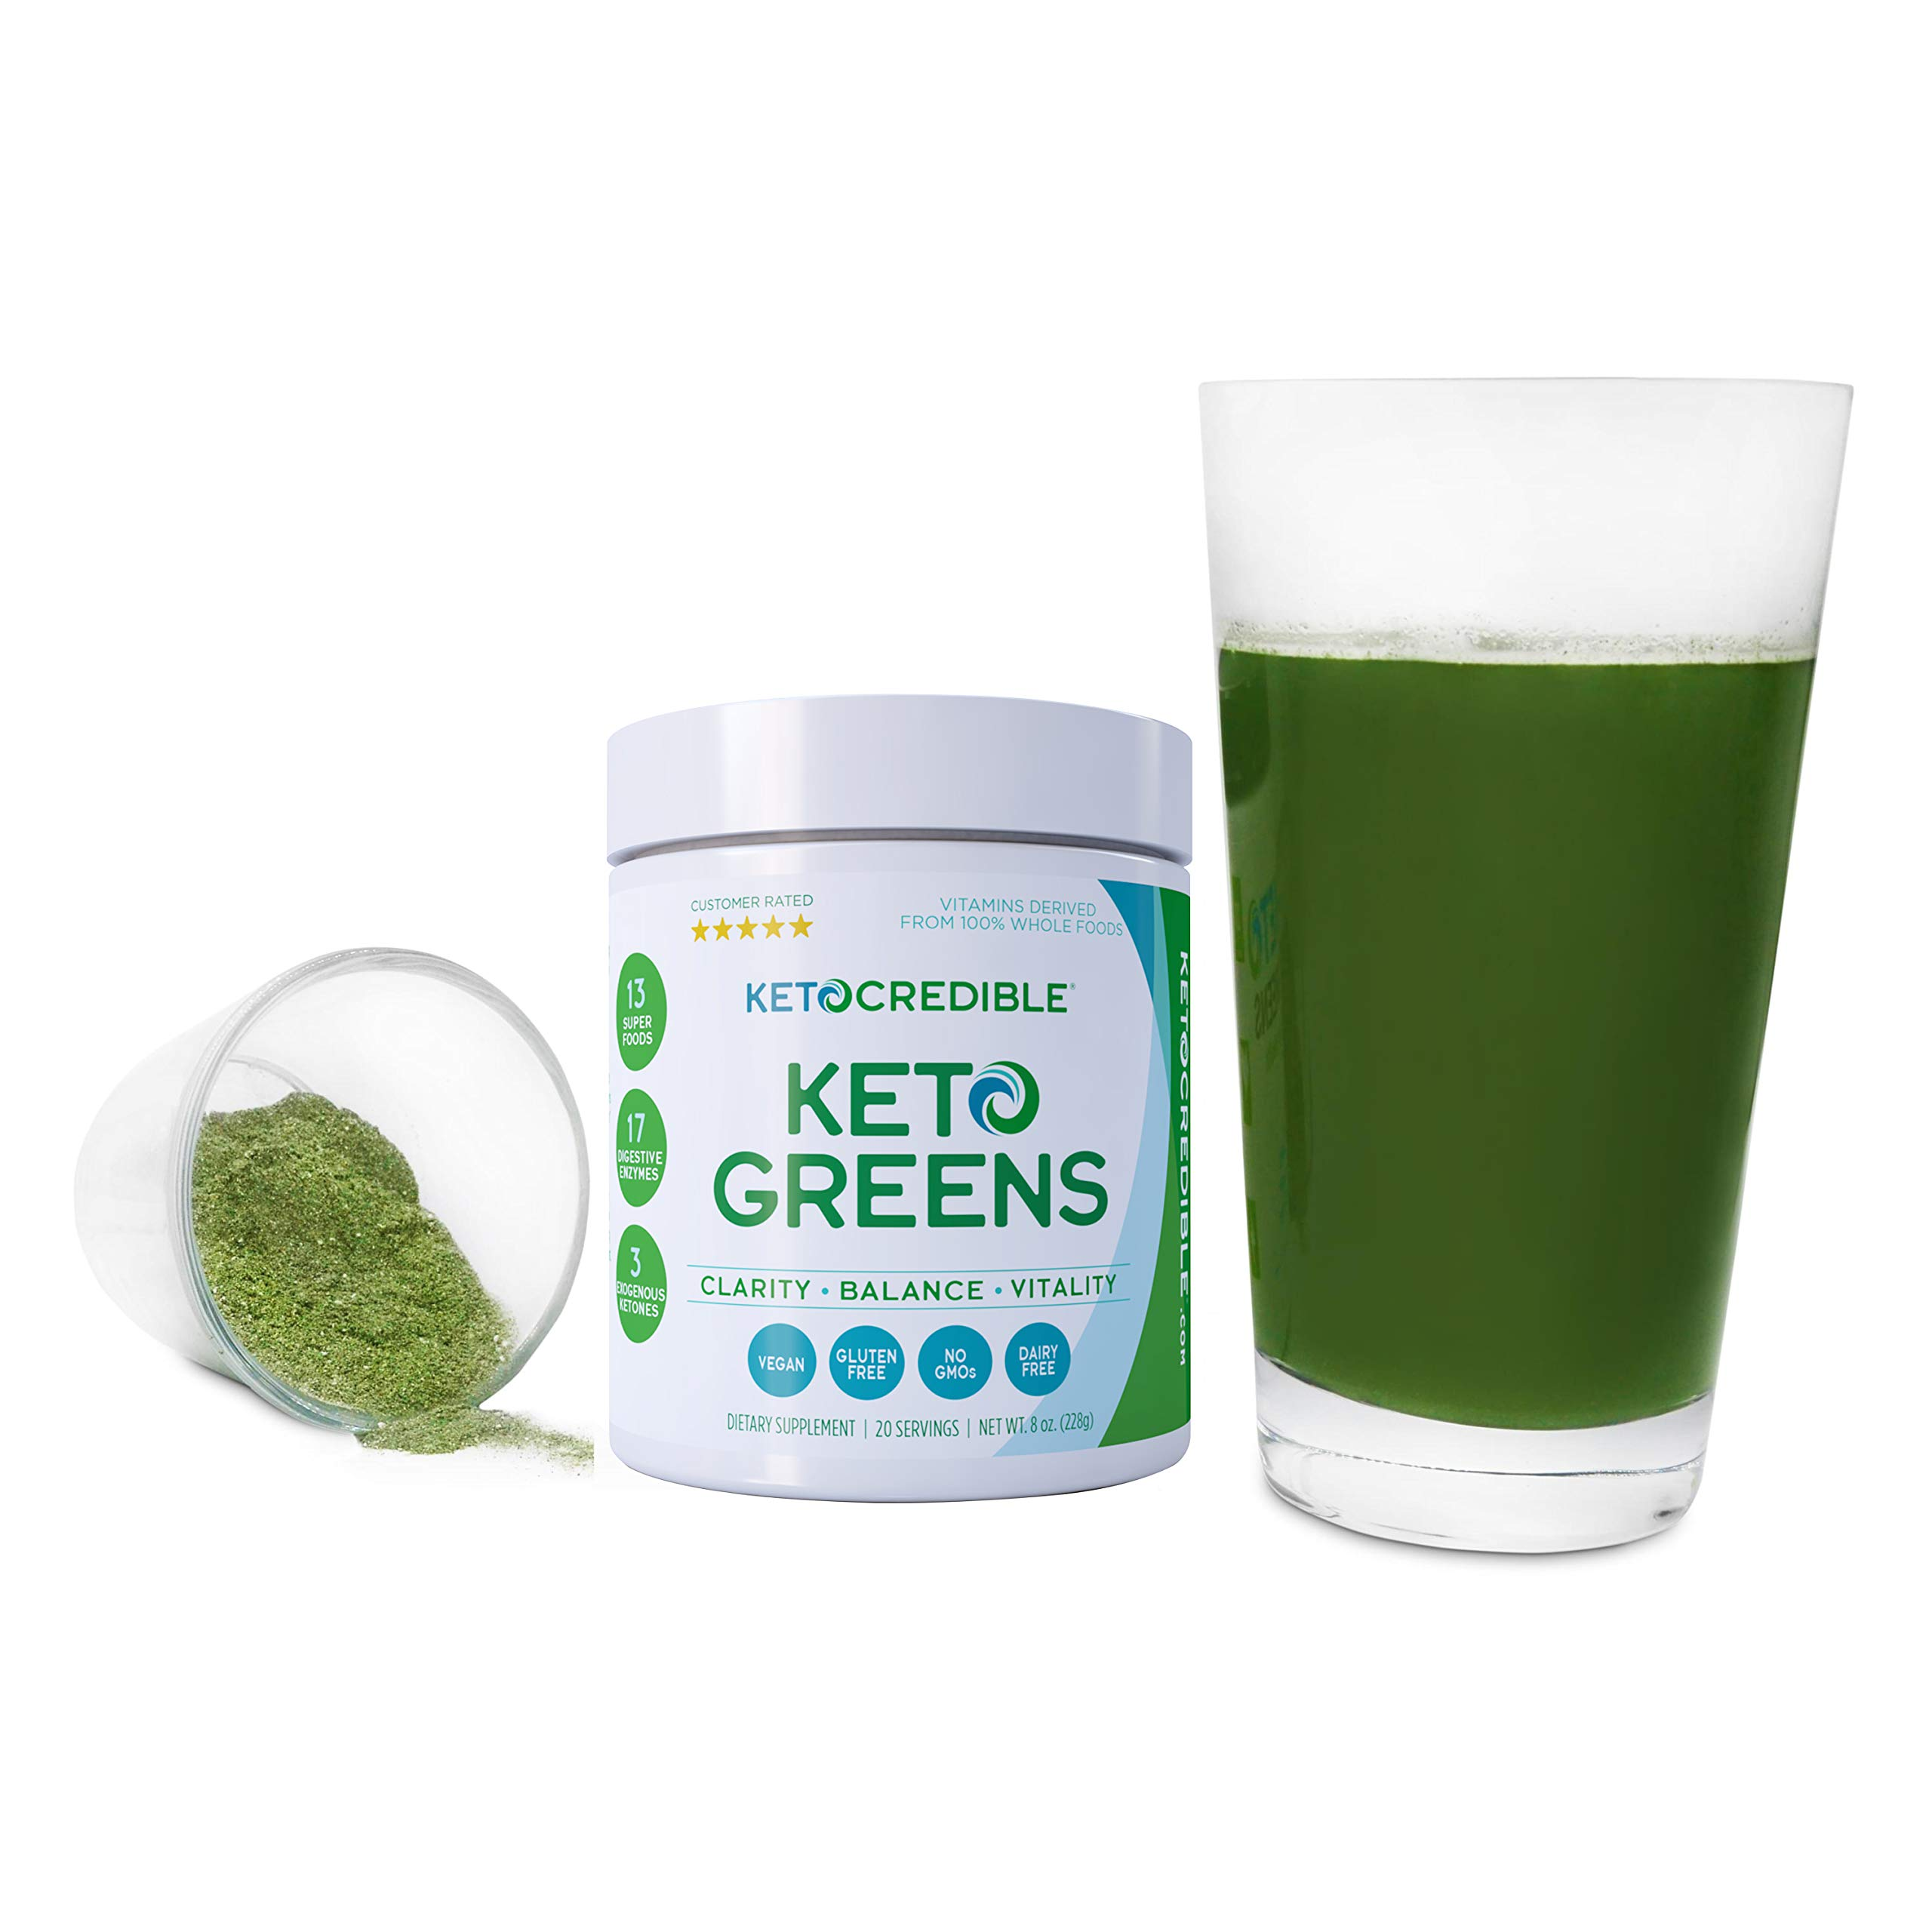 Keto Credible KetoGreens 3-in-1 Green Drink (23 Healthy Greens + Superfoods, 17 Digestive Enzymes, 3 Exogenous Ketones) Powder Optimized to Burn Fat, Increase Energy/Clarity and Jump-Start Ketosis